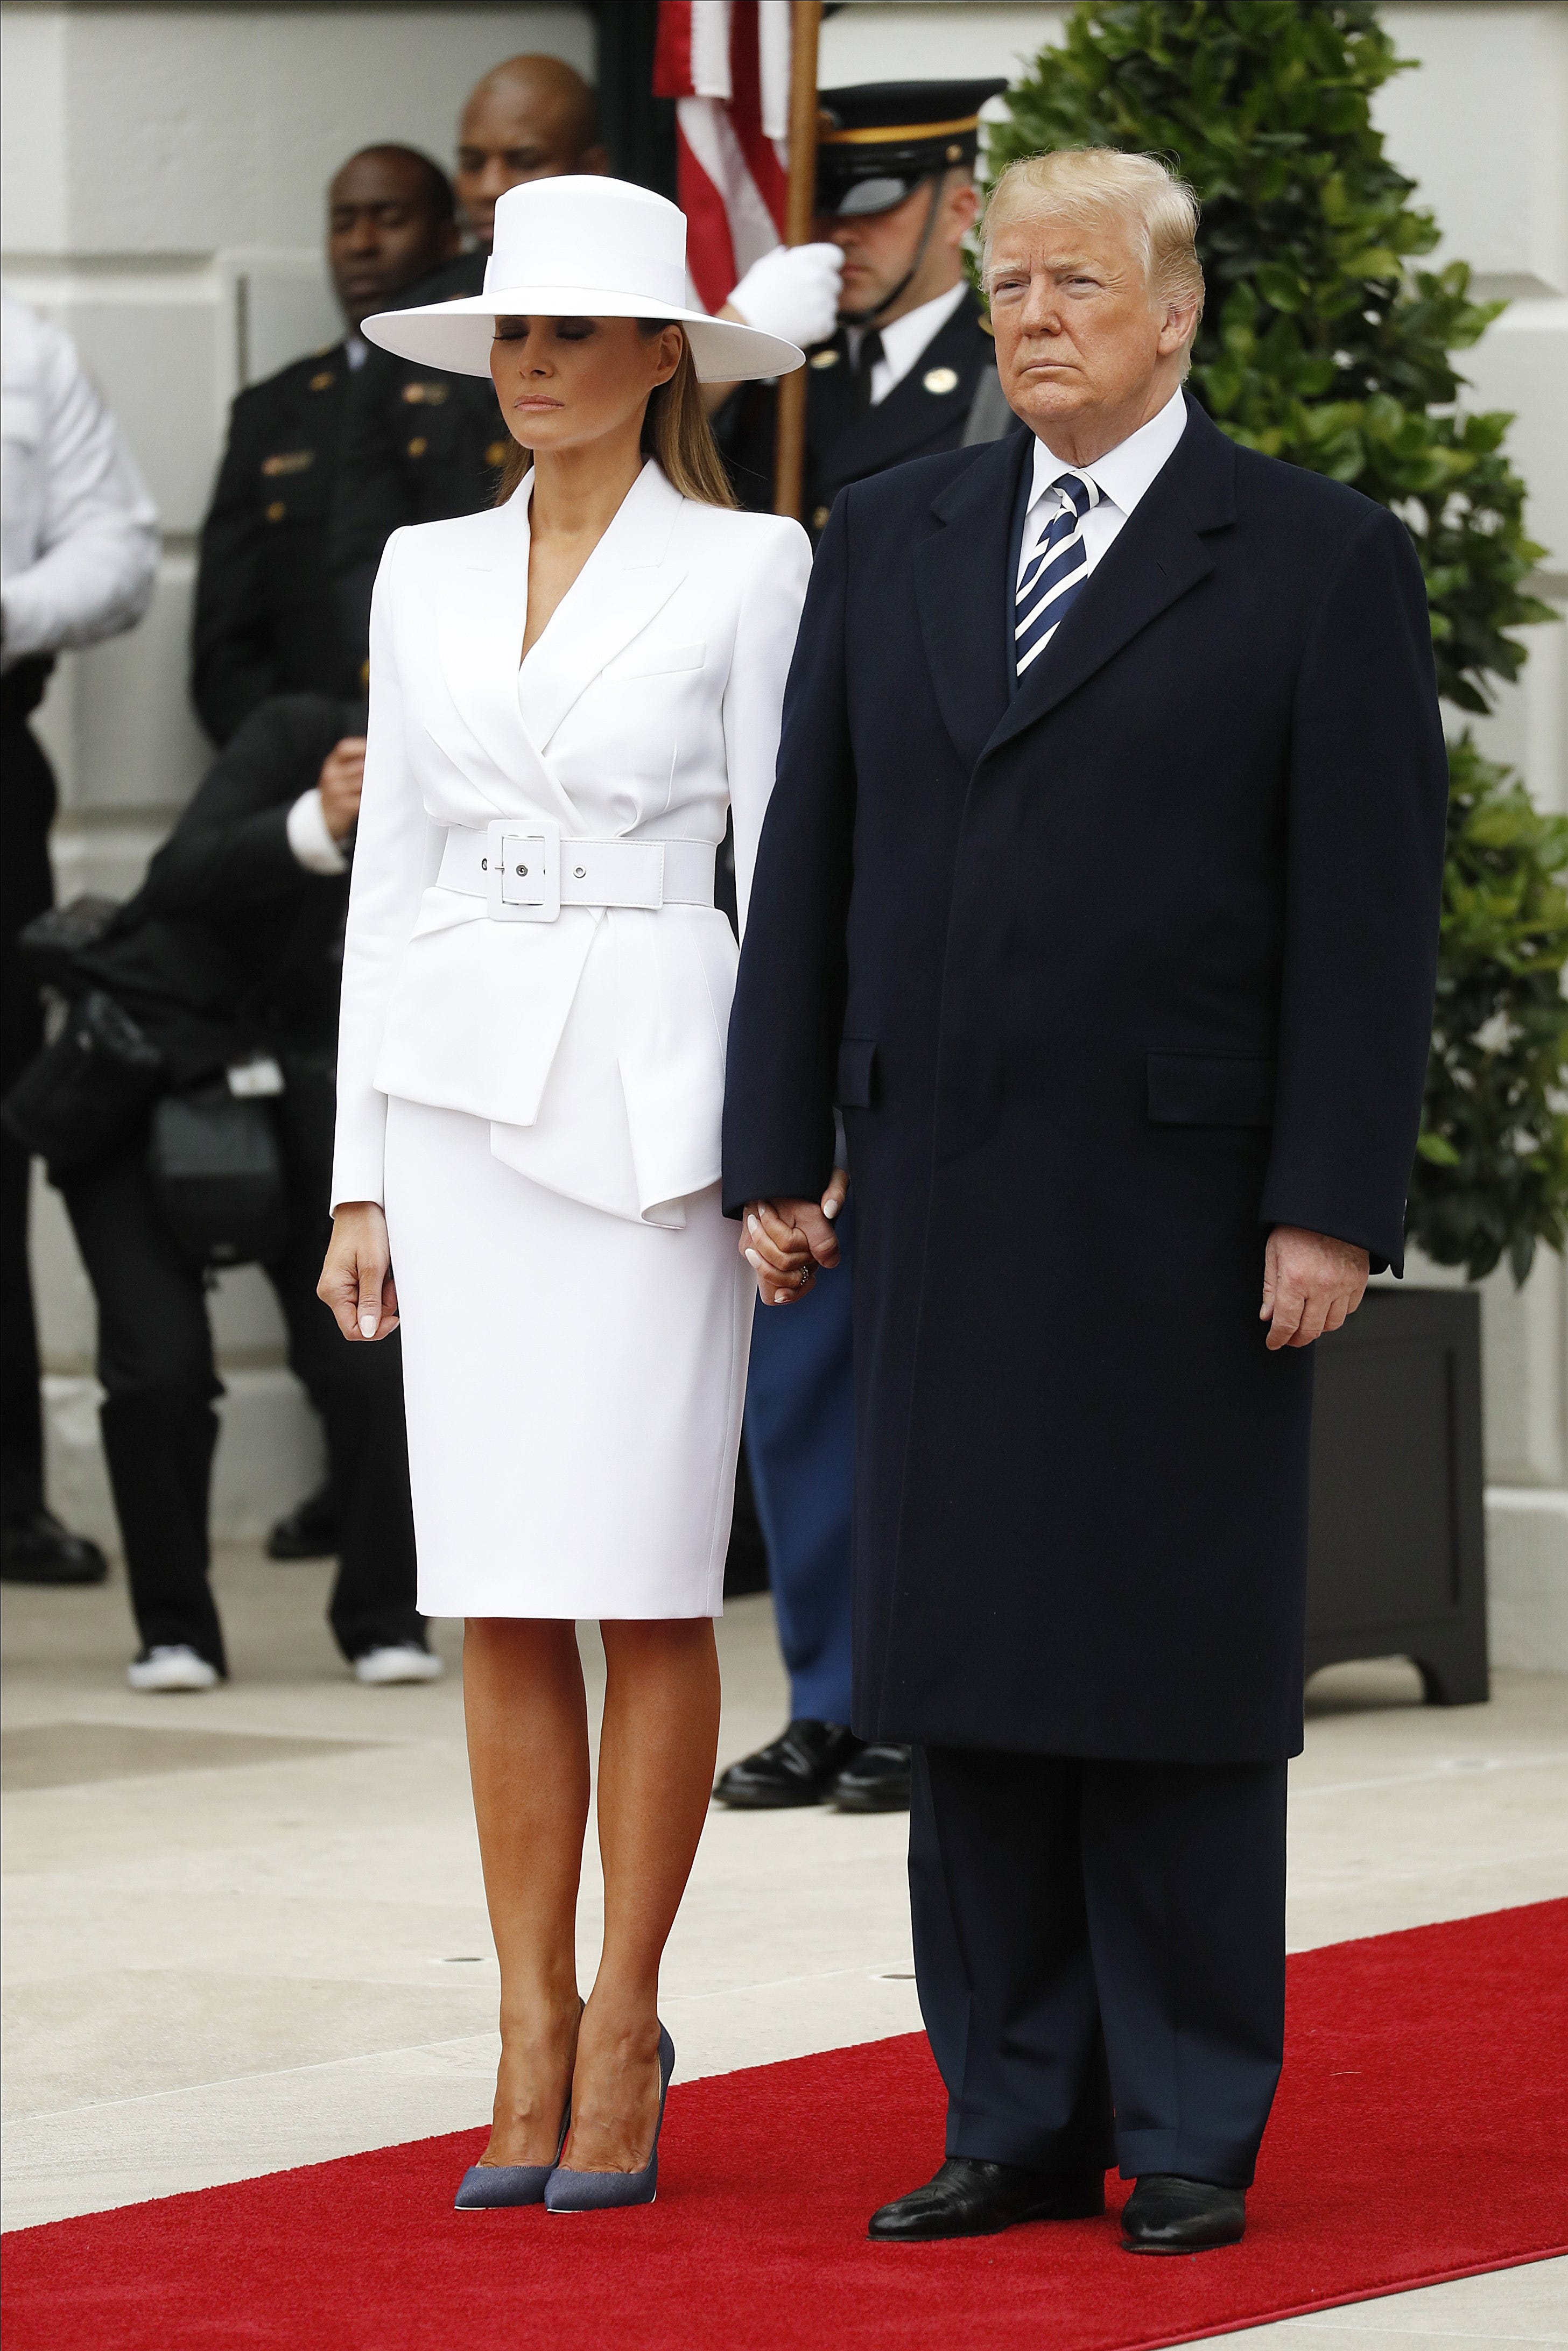 Melania's white hat and suit earn Beyoncé, Olivia Pope comparisons from Twitter